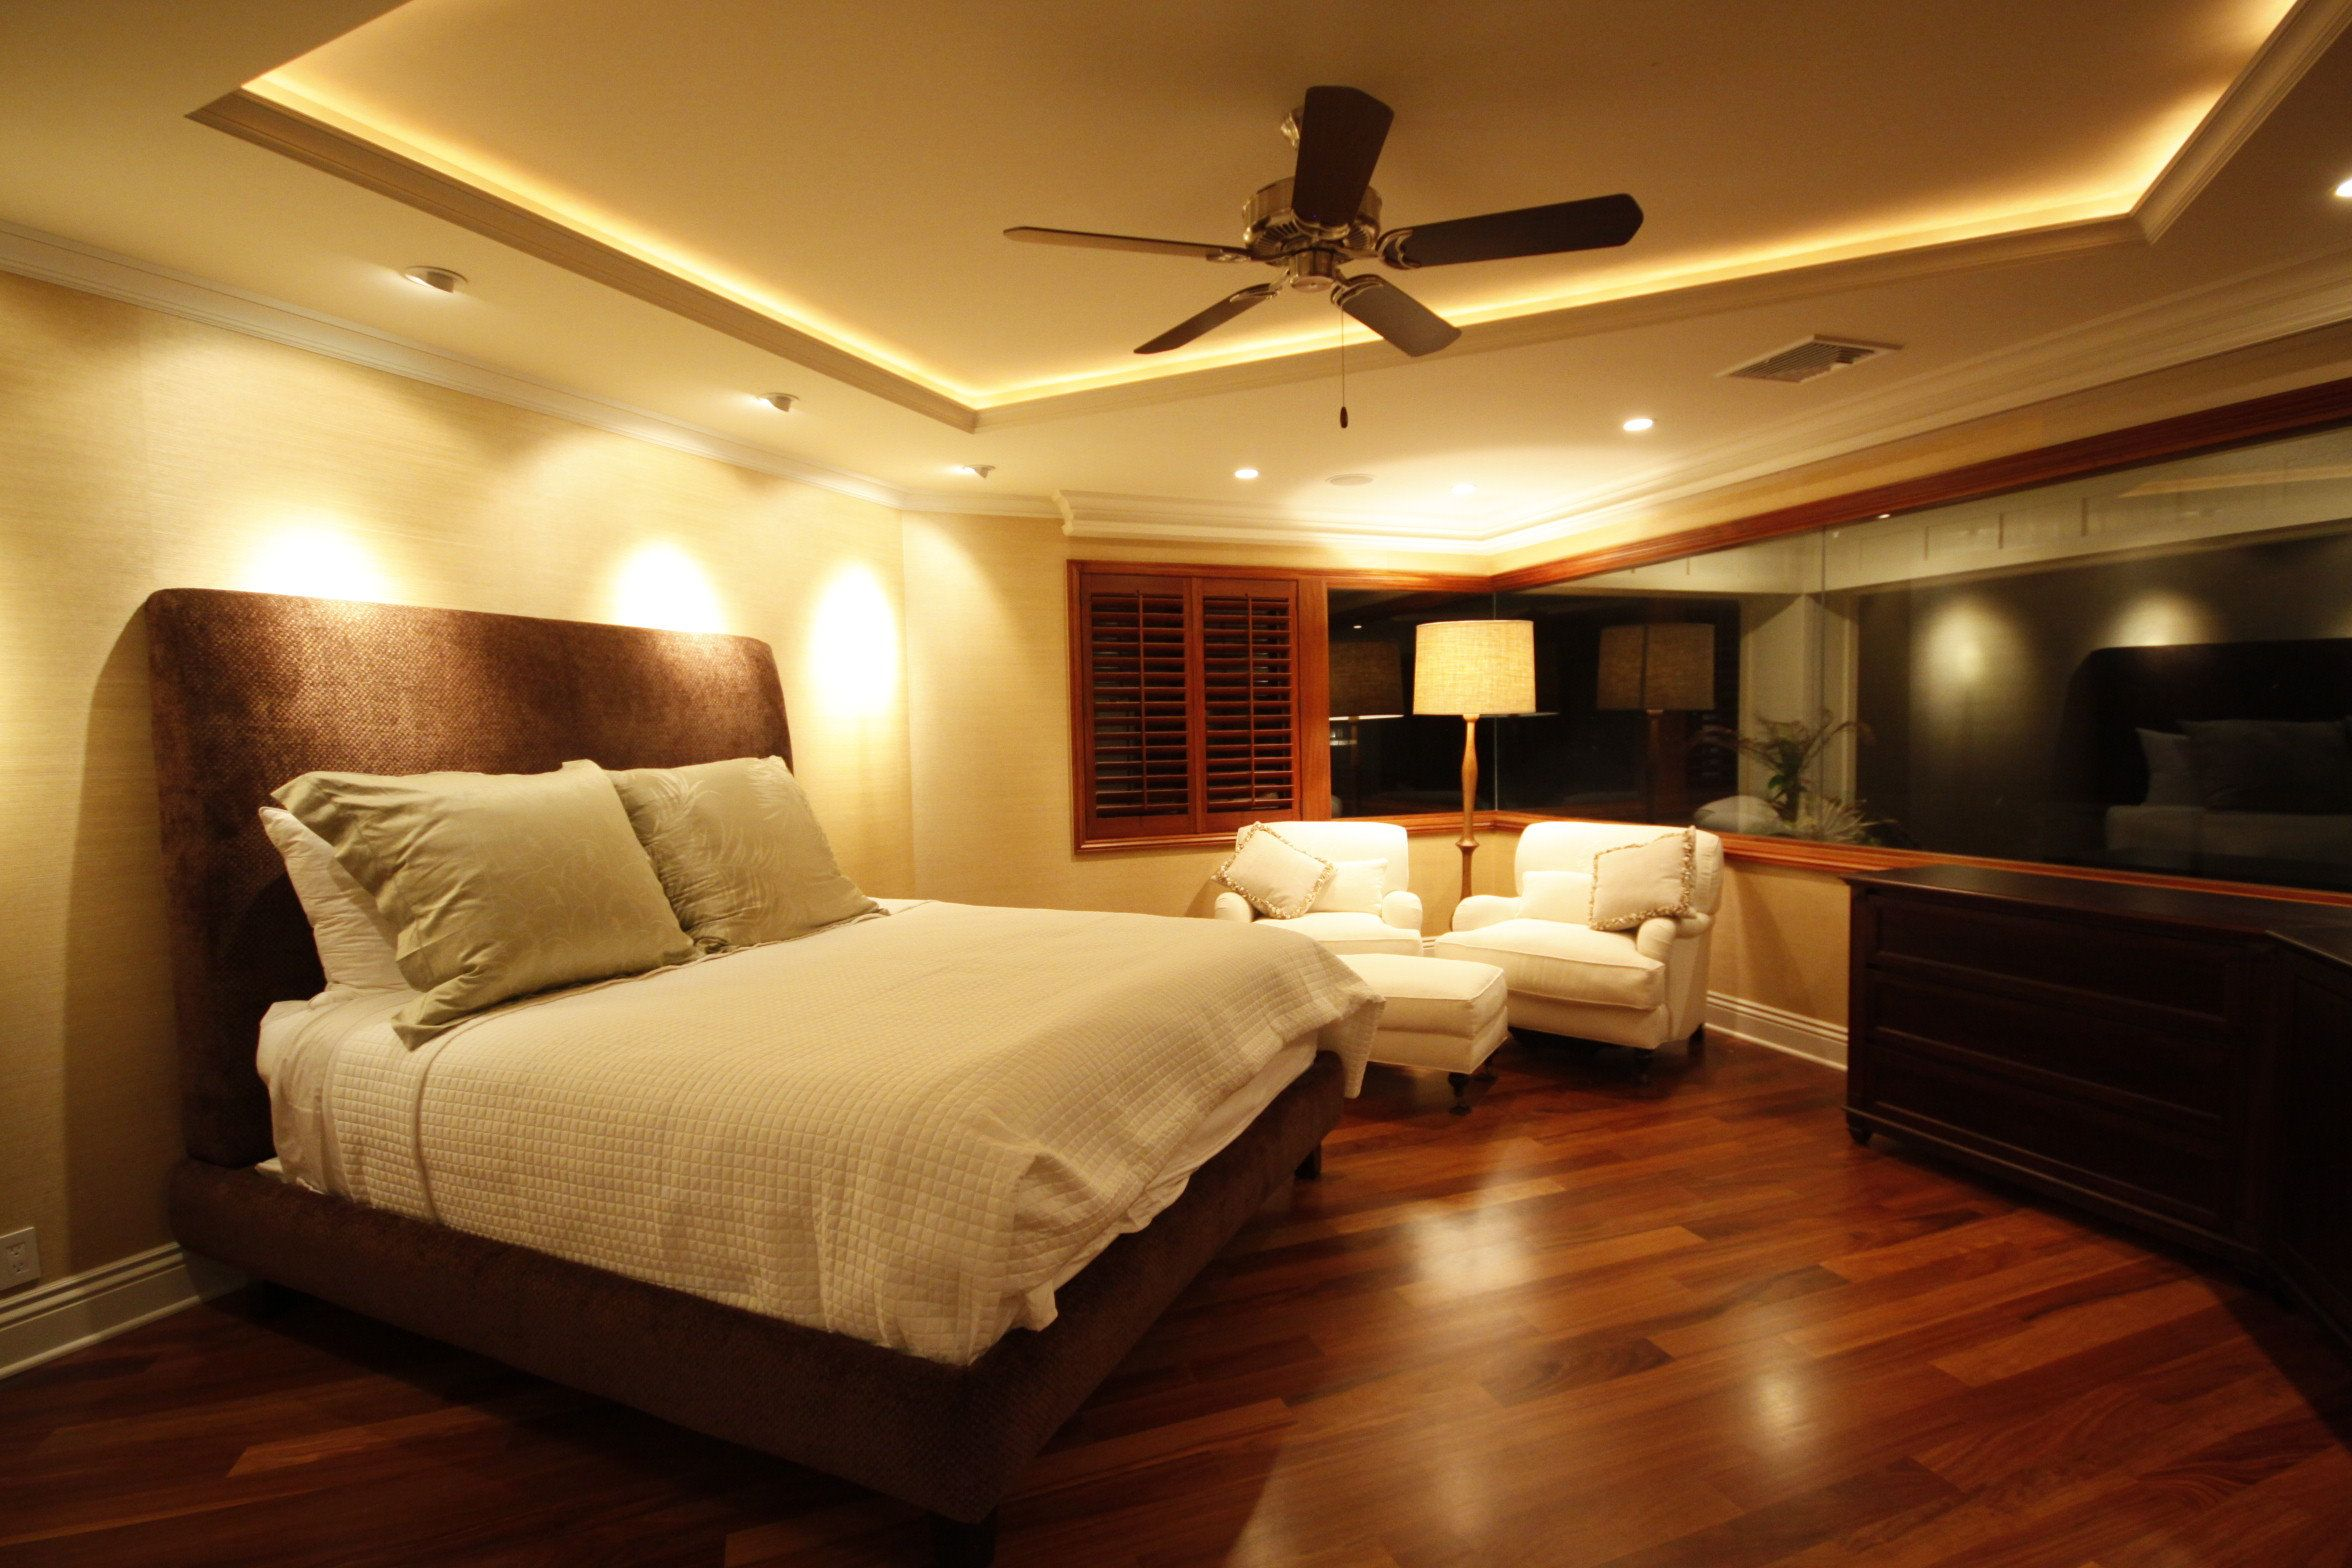 Modern master bedroom ceiling designs - Appealing Master Bedroom Modern Decor With Wooden Floors Also Luxury Master Bed Also Sweet Pair Of